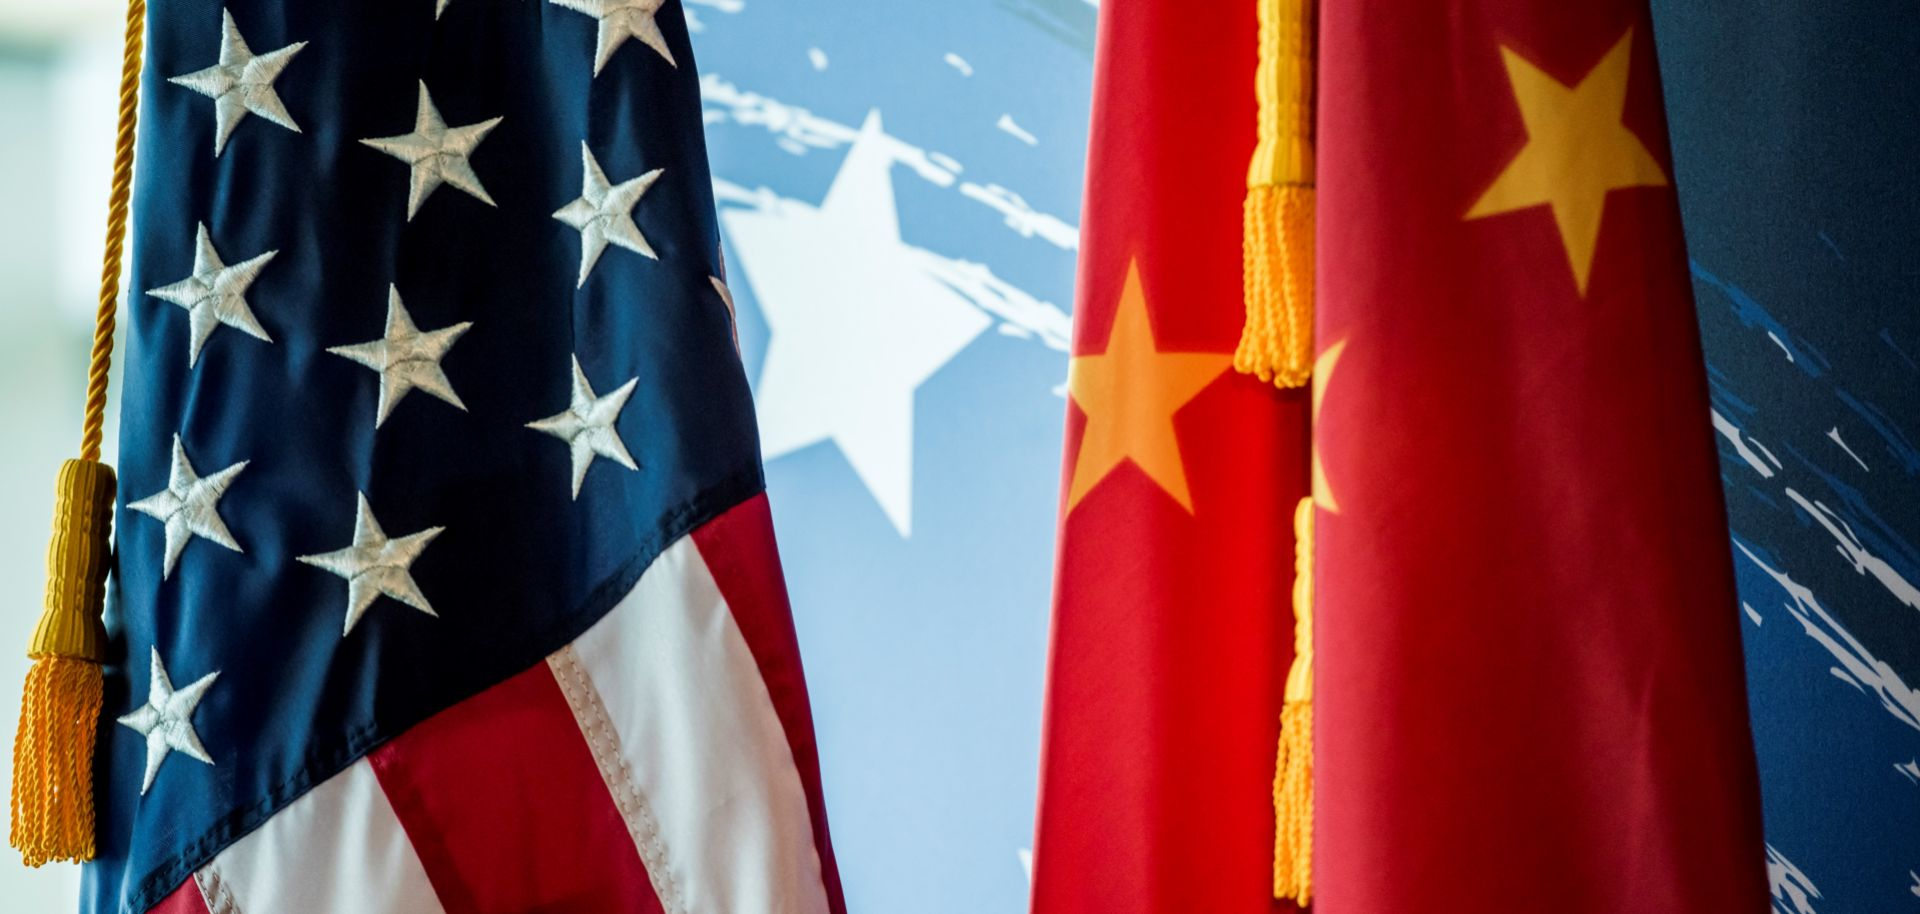 The Chinese and U.S. flags are seen during a promotional event in Beijing on June 30, 2017.